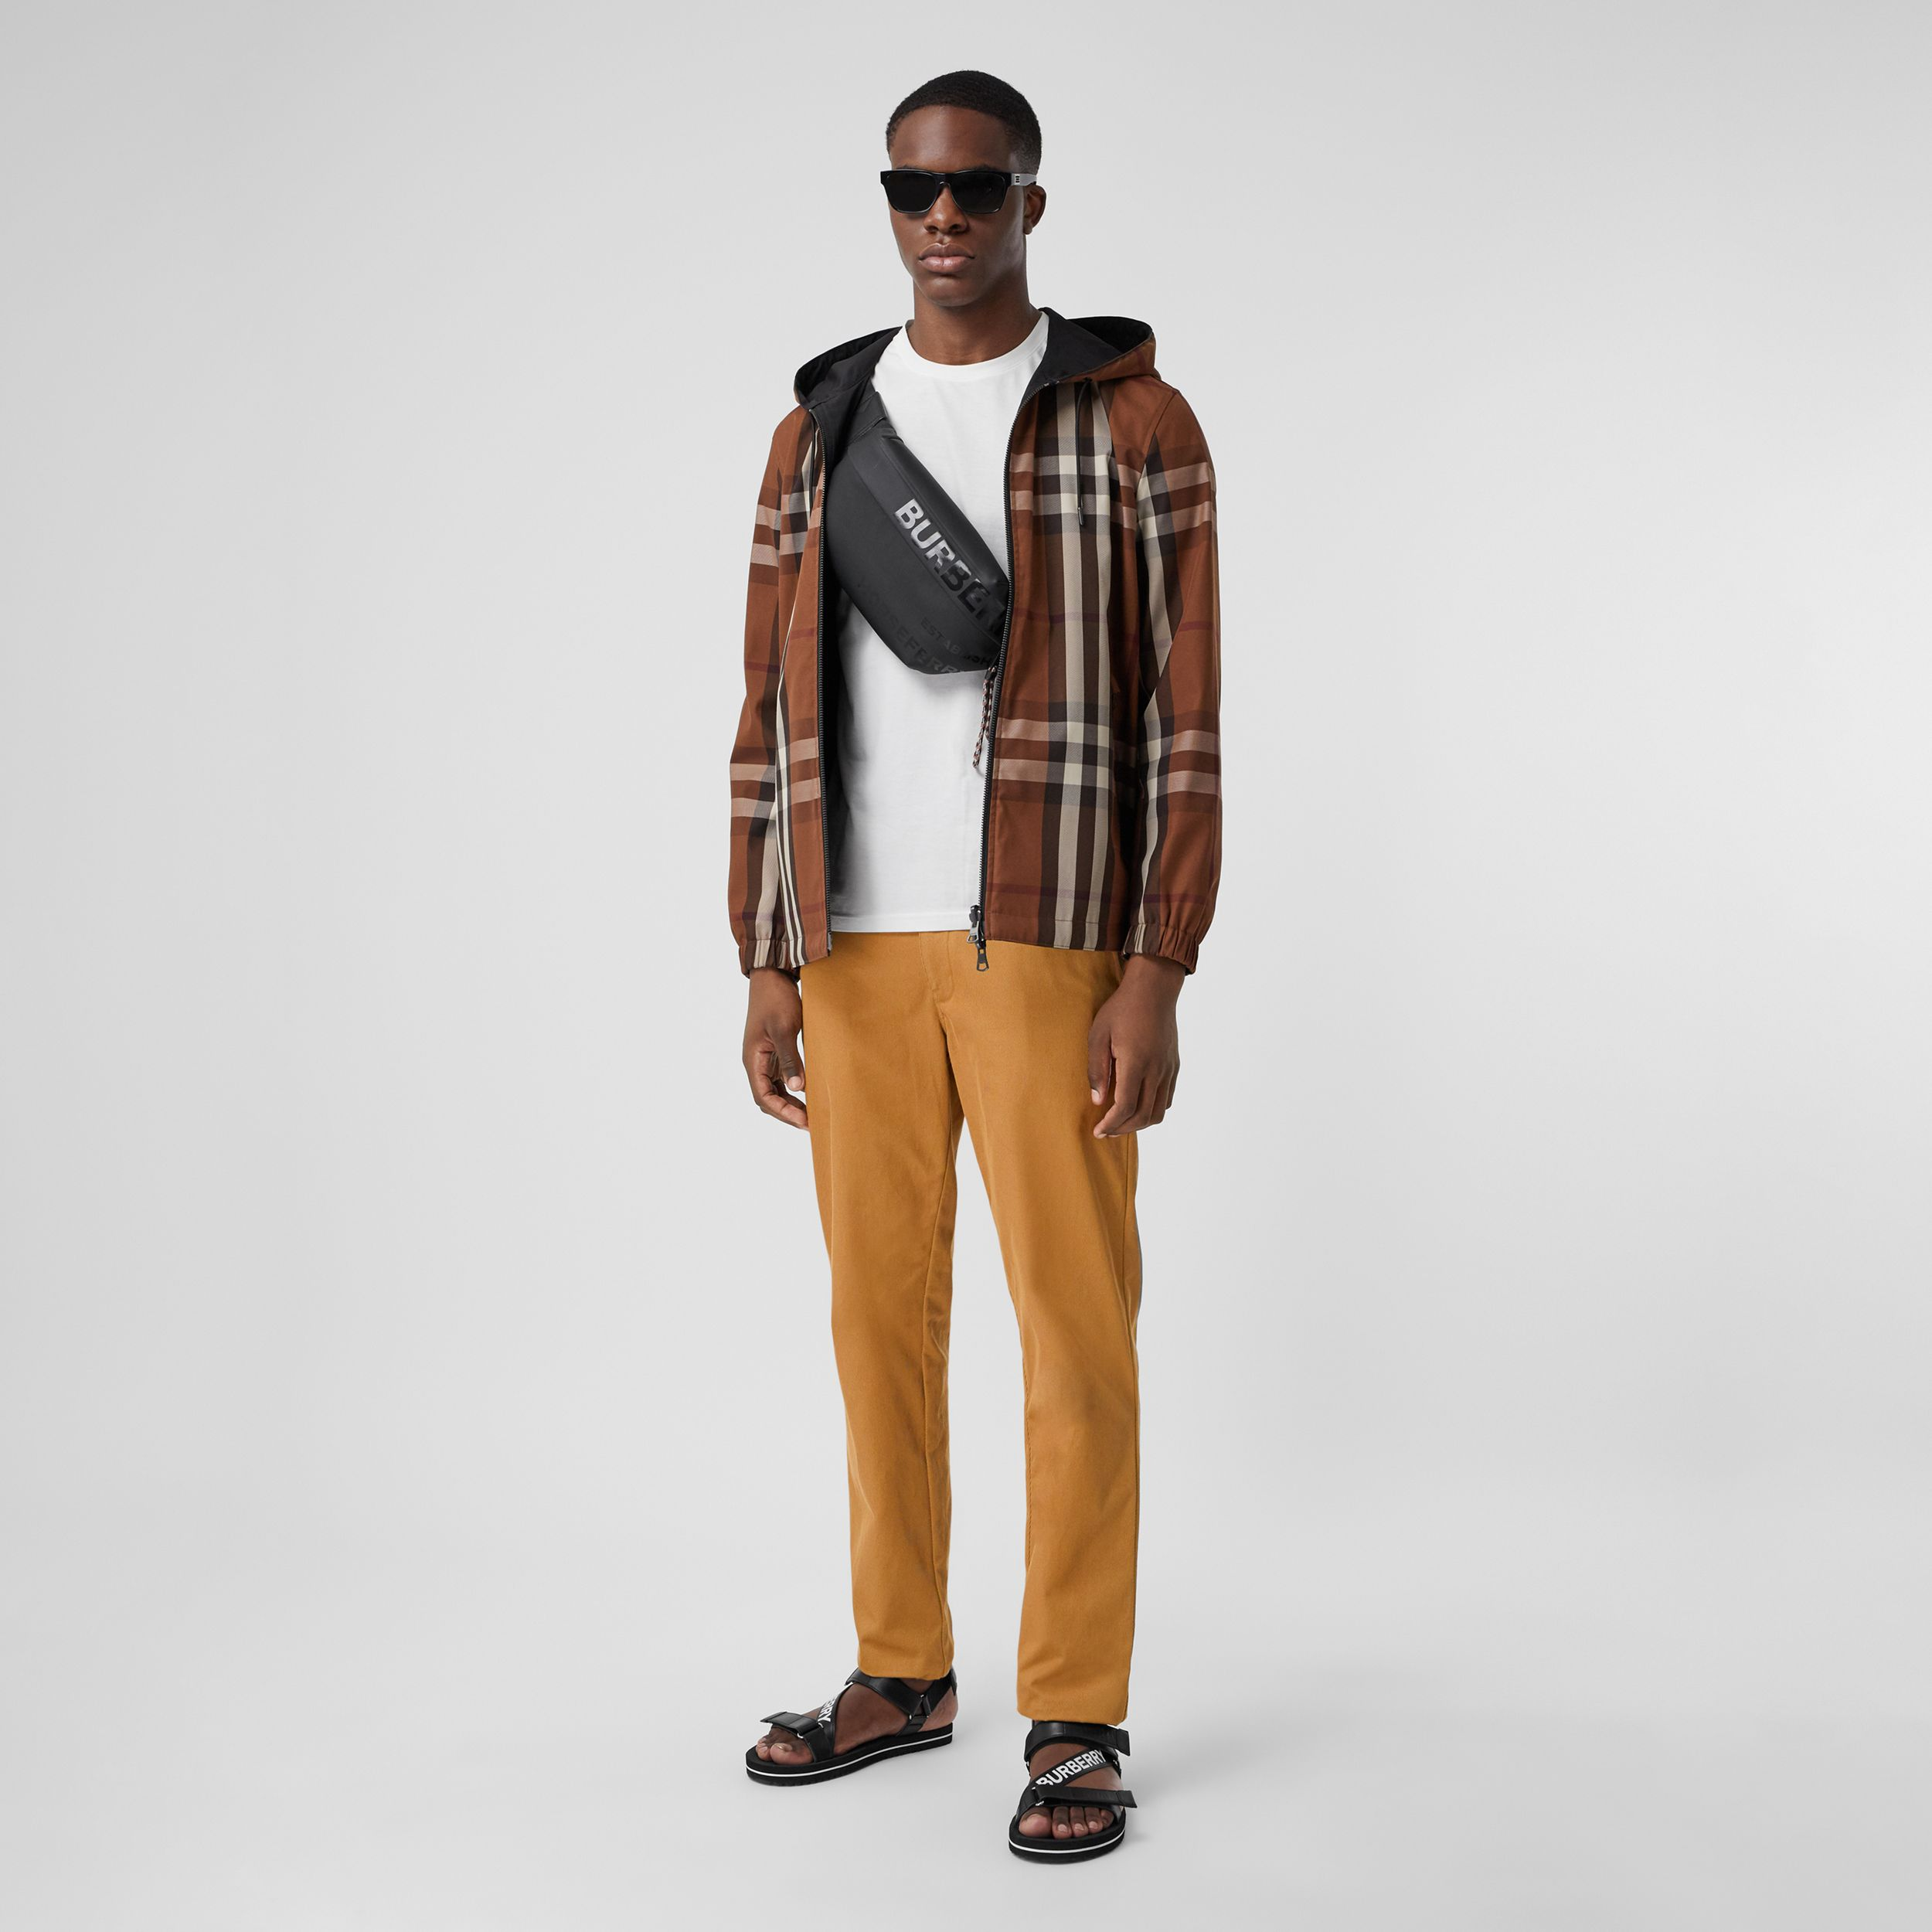 Straight Fit Logo Detail Cotton Chinos in Camel - Men | Burberry - 1